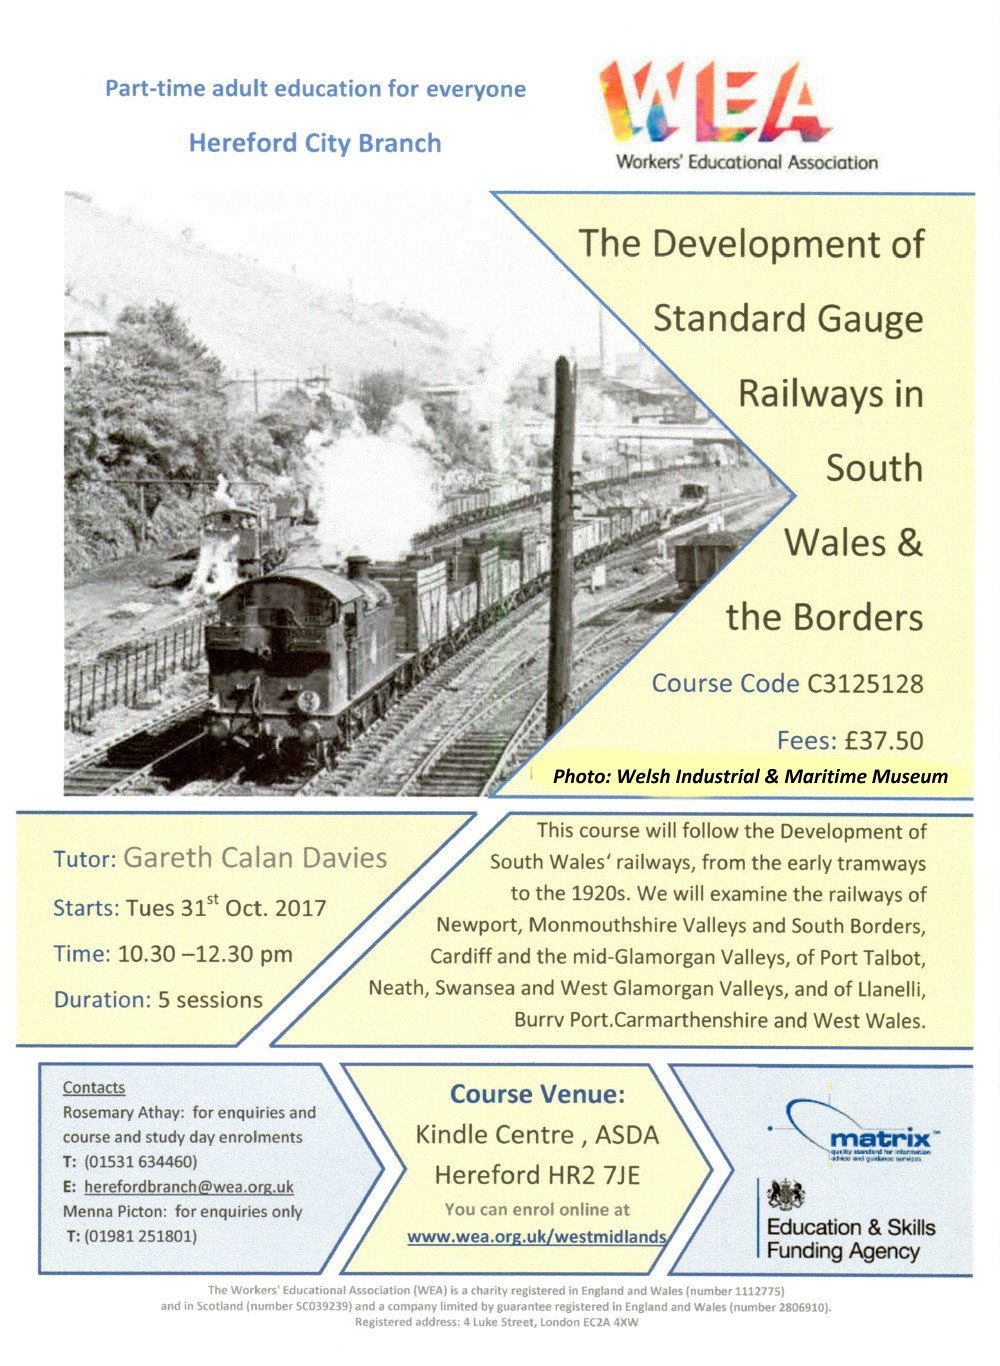 South Wales Railway Course: Workers Educational Association